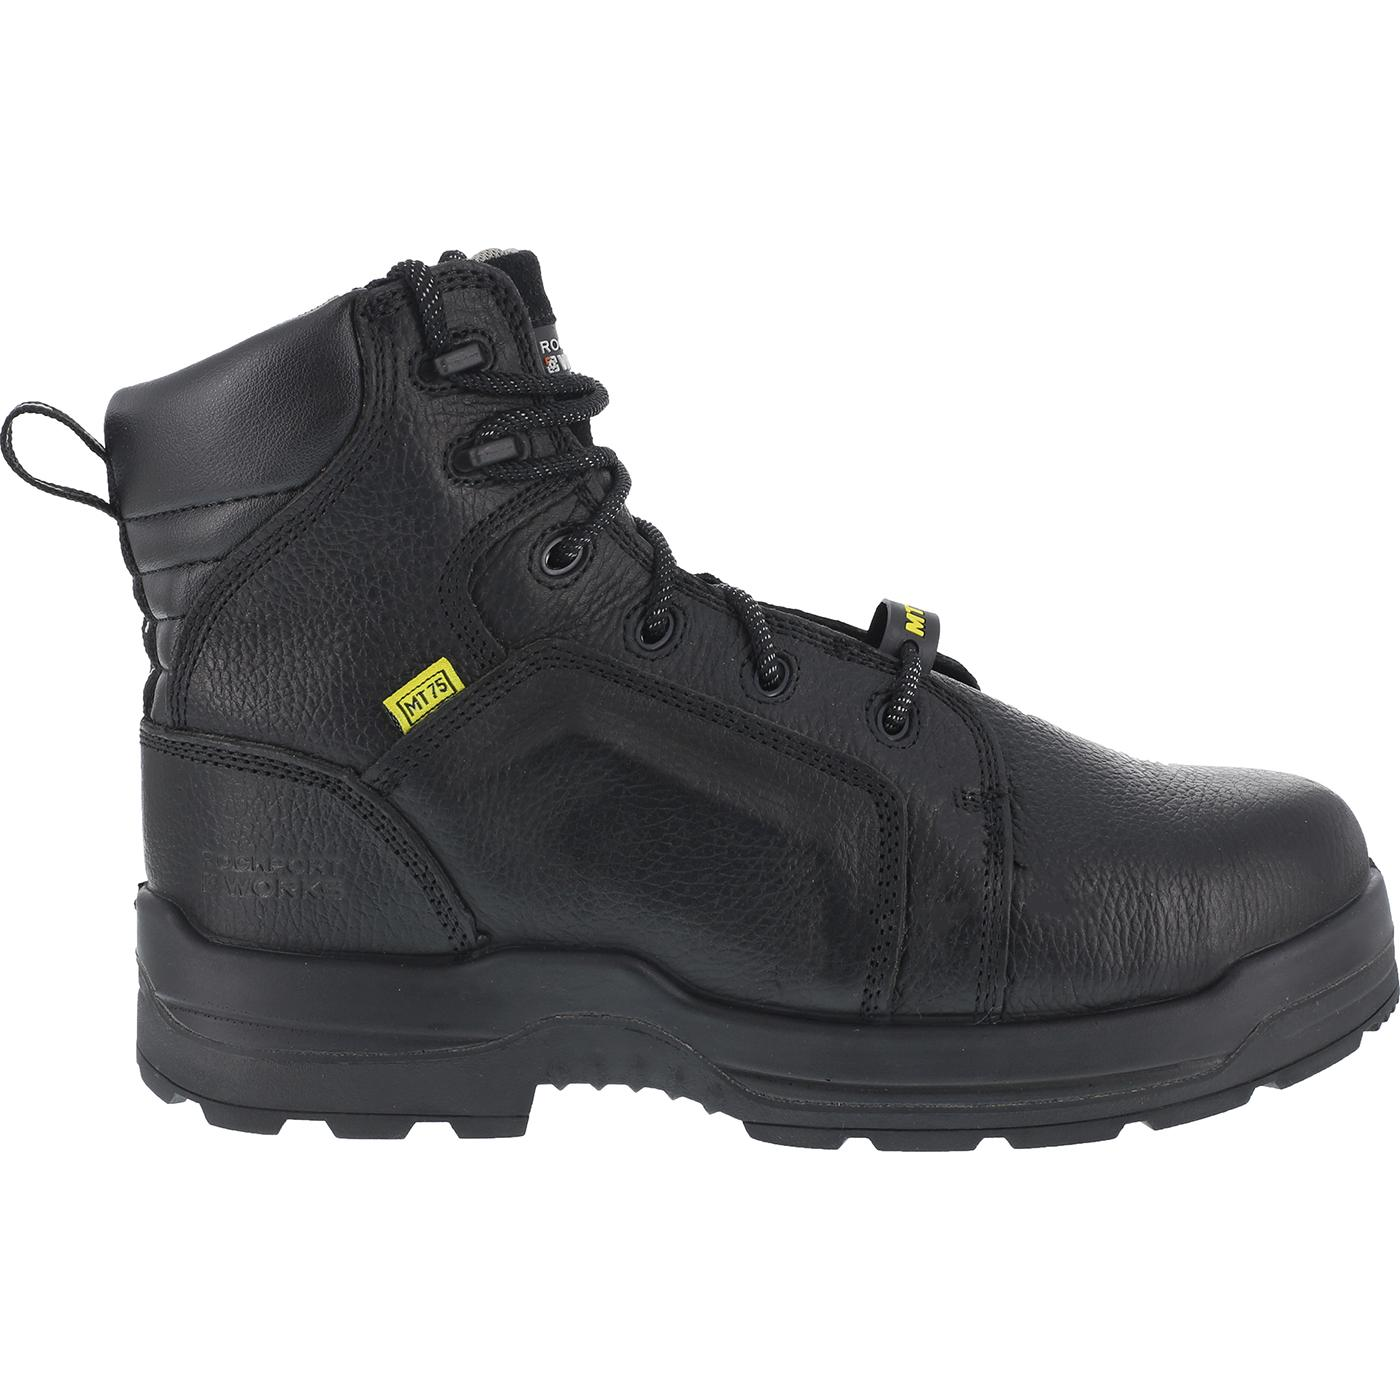 Rockport Safety Shoes Womens